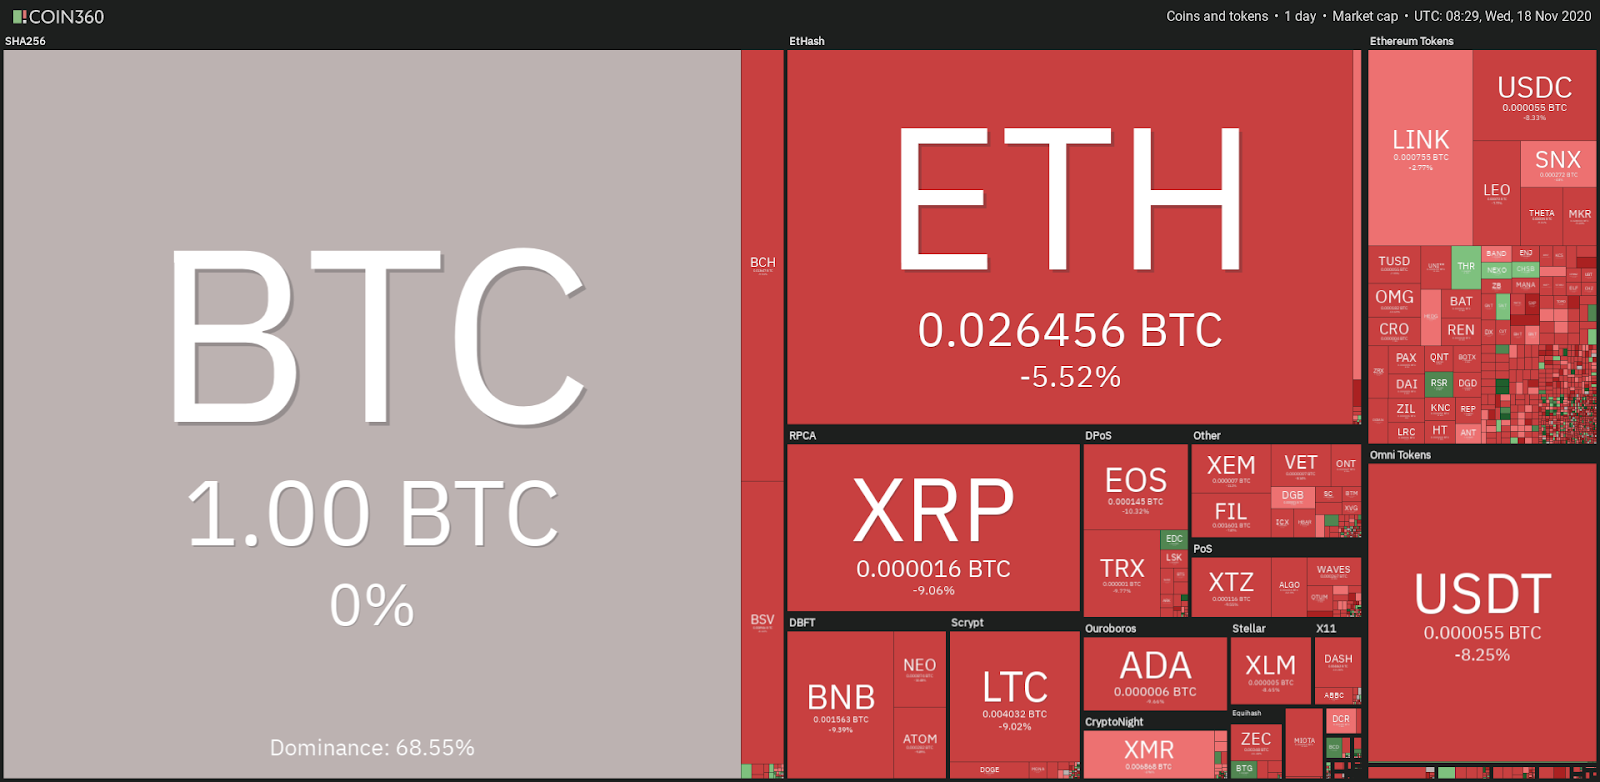 Top cryptocurrency prices - 11/18